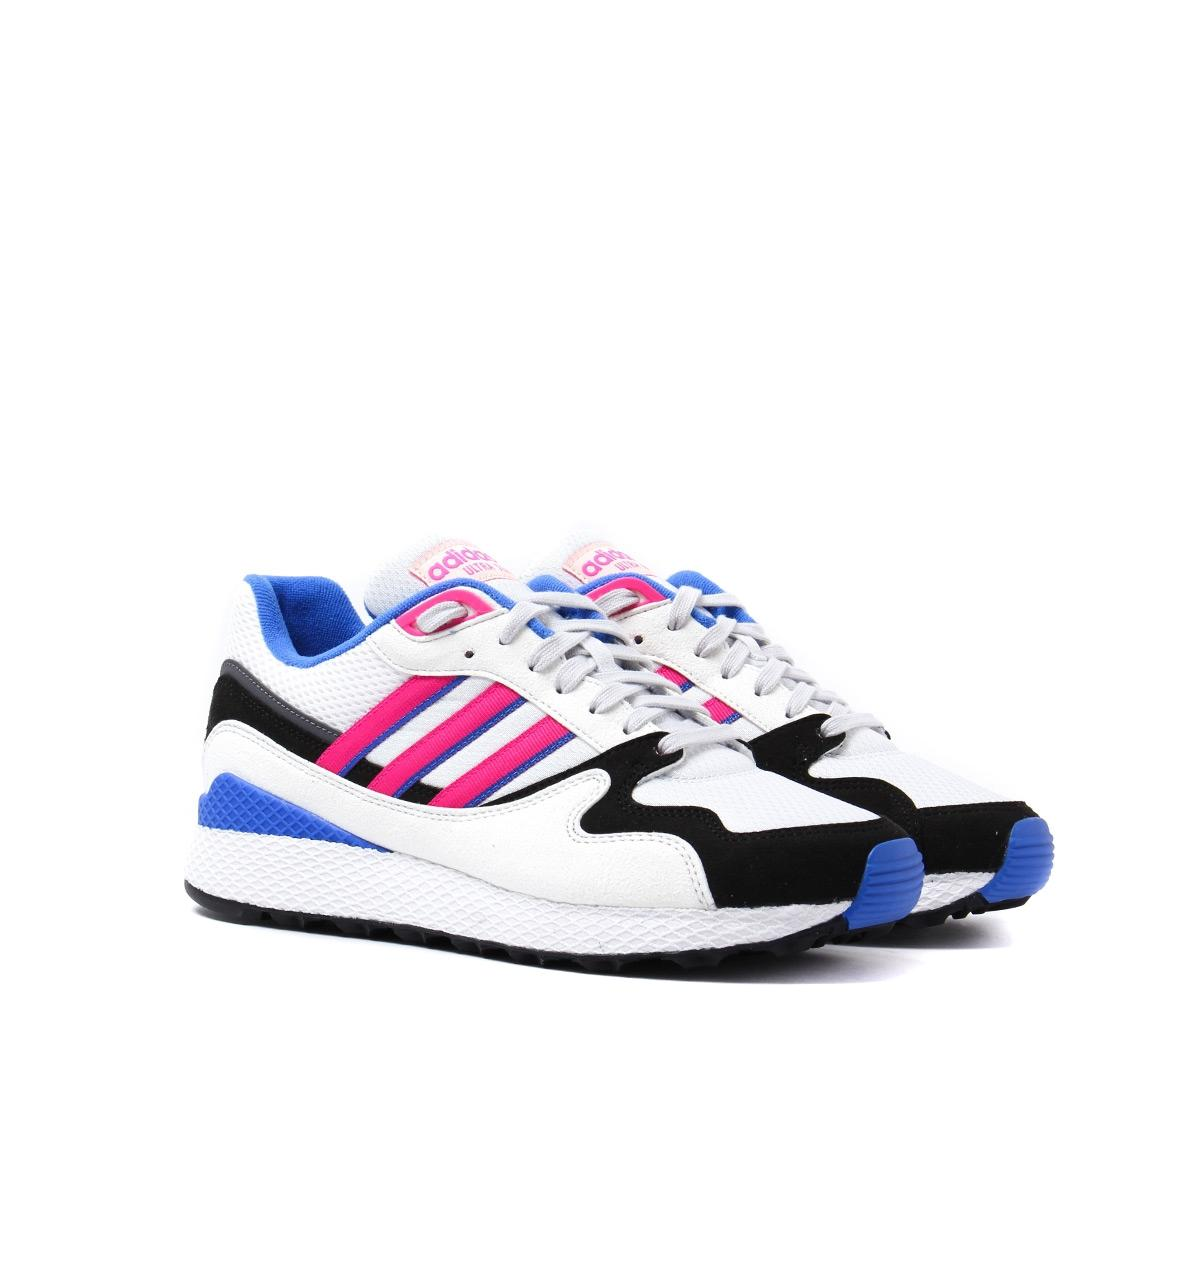 75125b9477bee Lyst - adidas Originals White